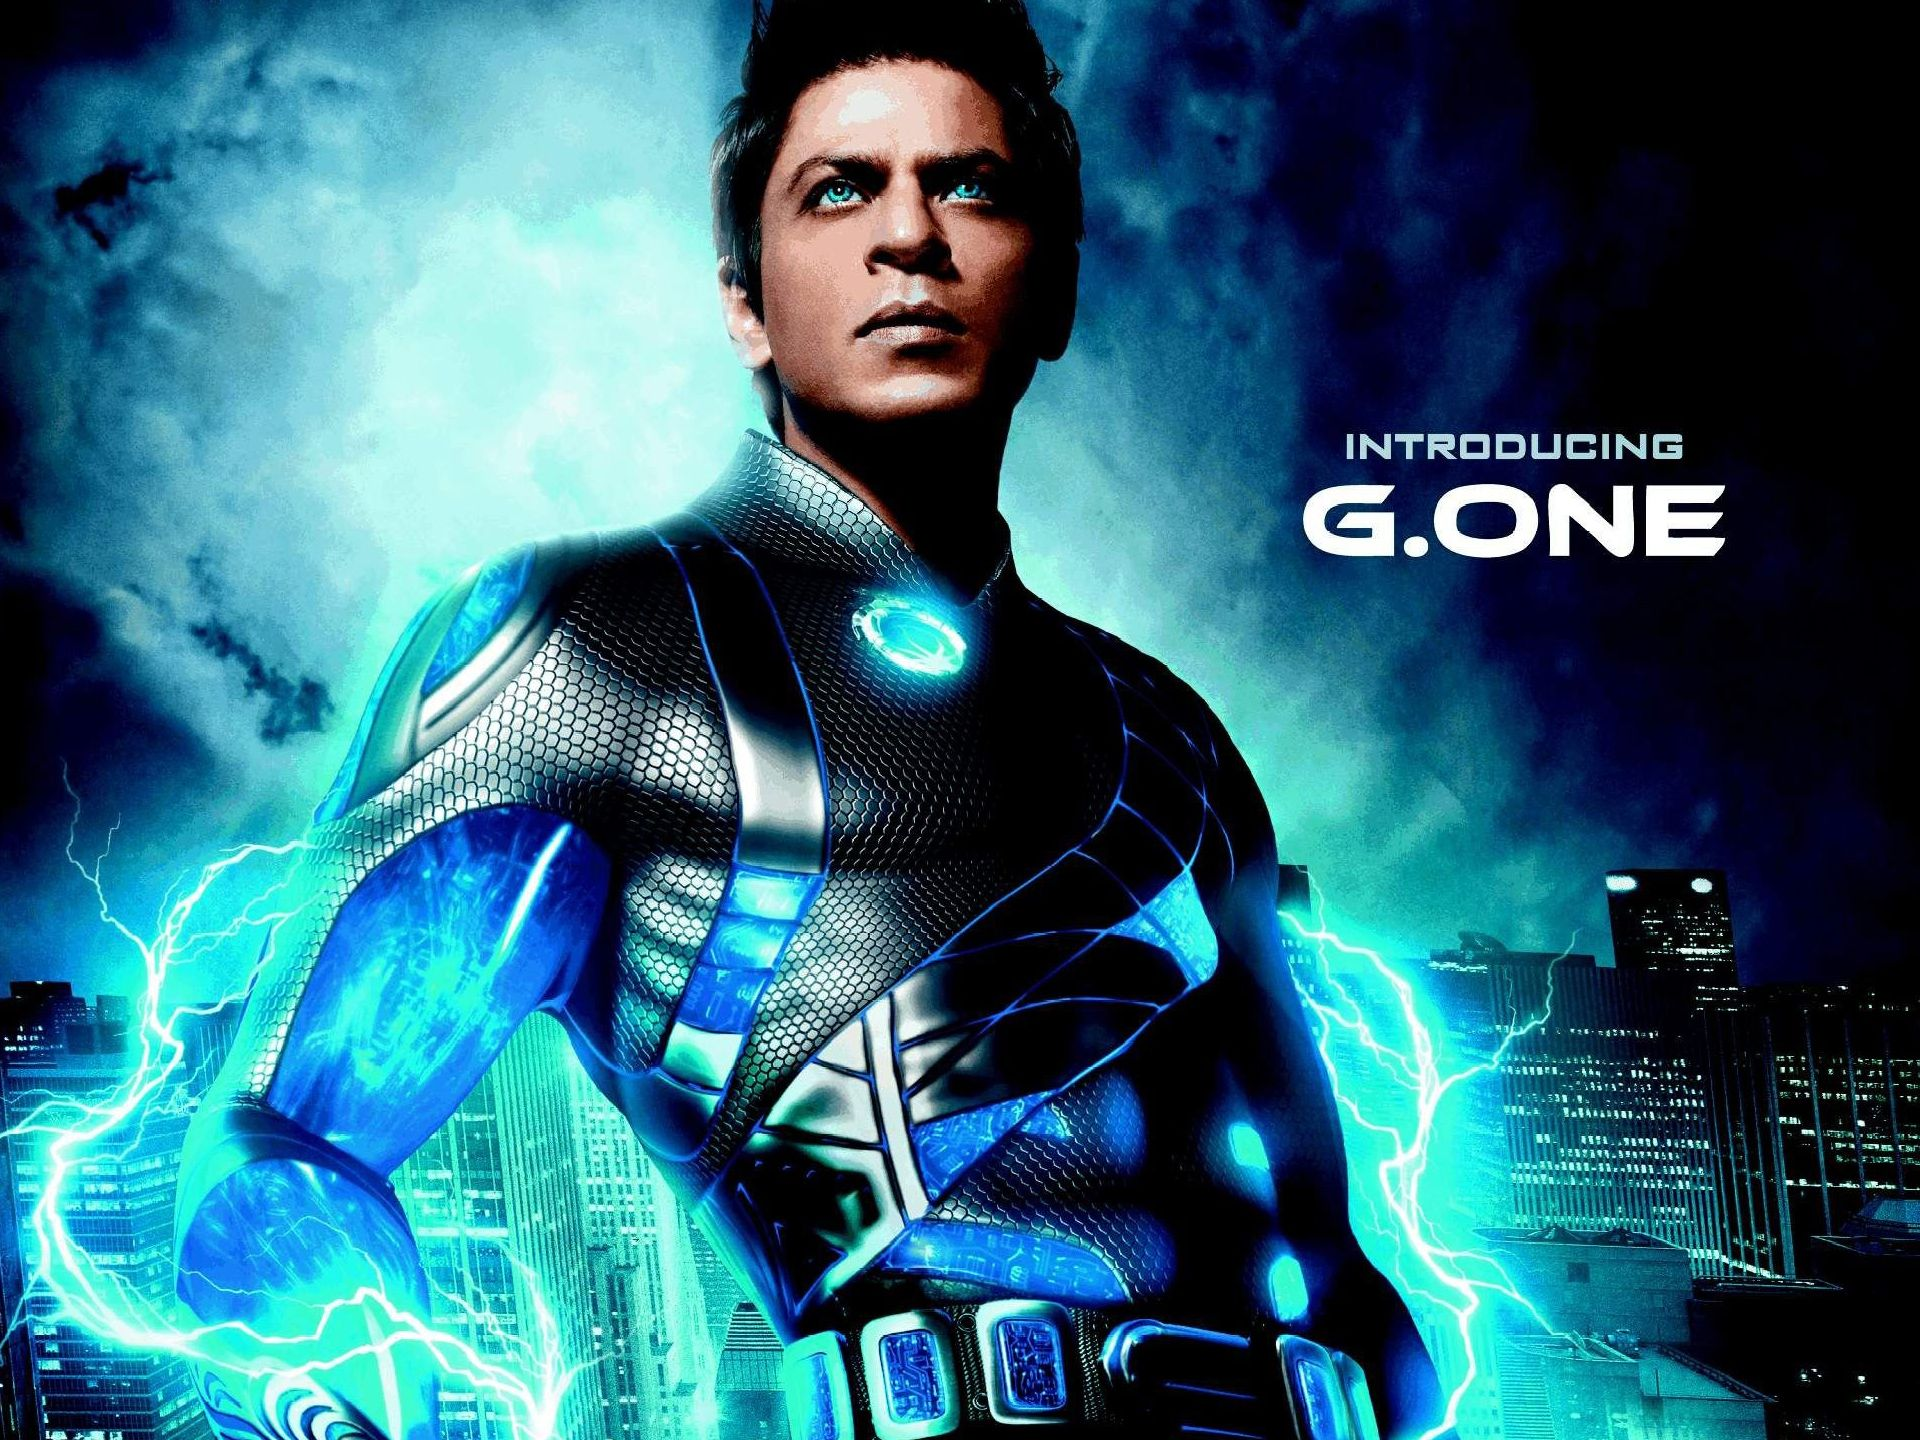 Shahrukh Khan In Ra One Wallpapers Hd Wallpapers Free Movies Online Shahrukh Khan Movie Wallpapers